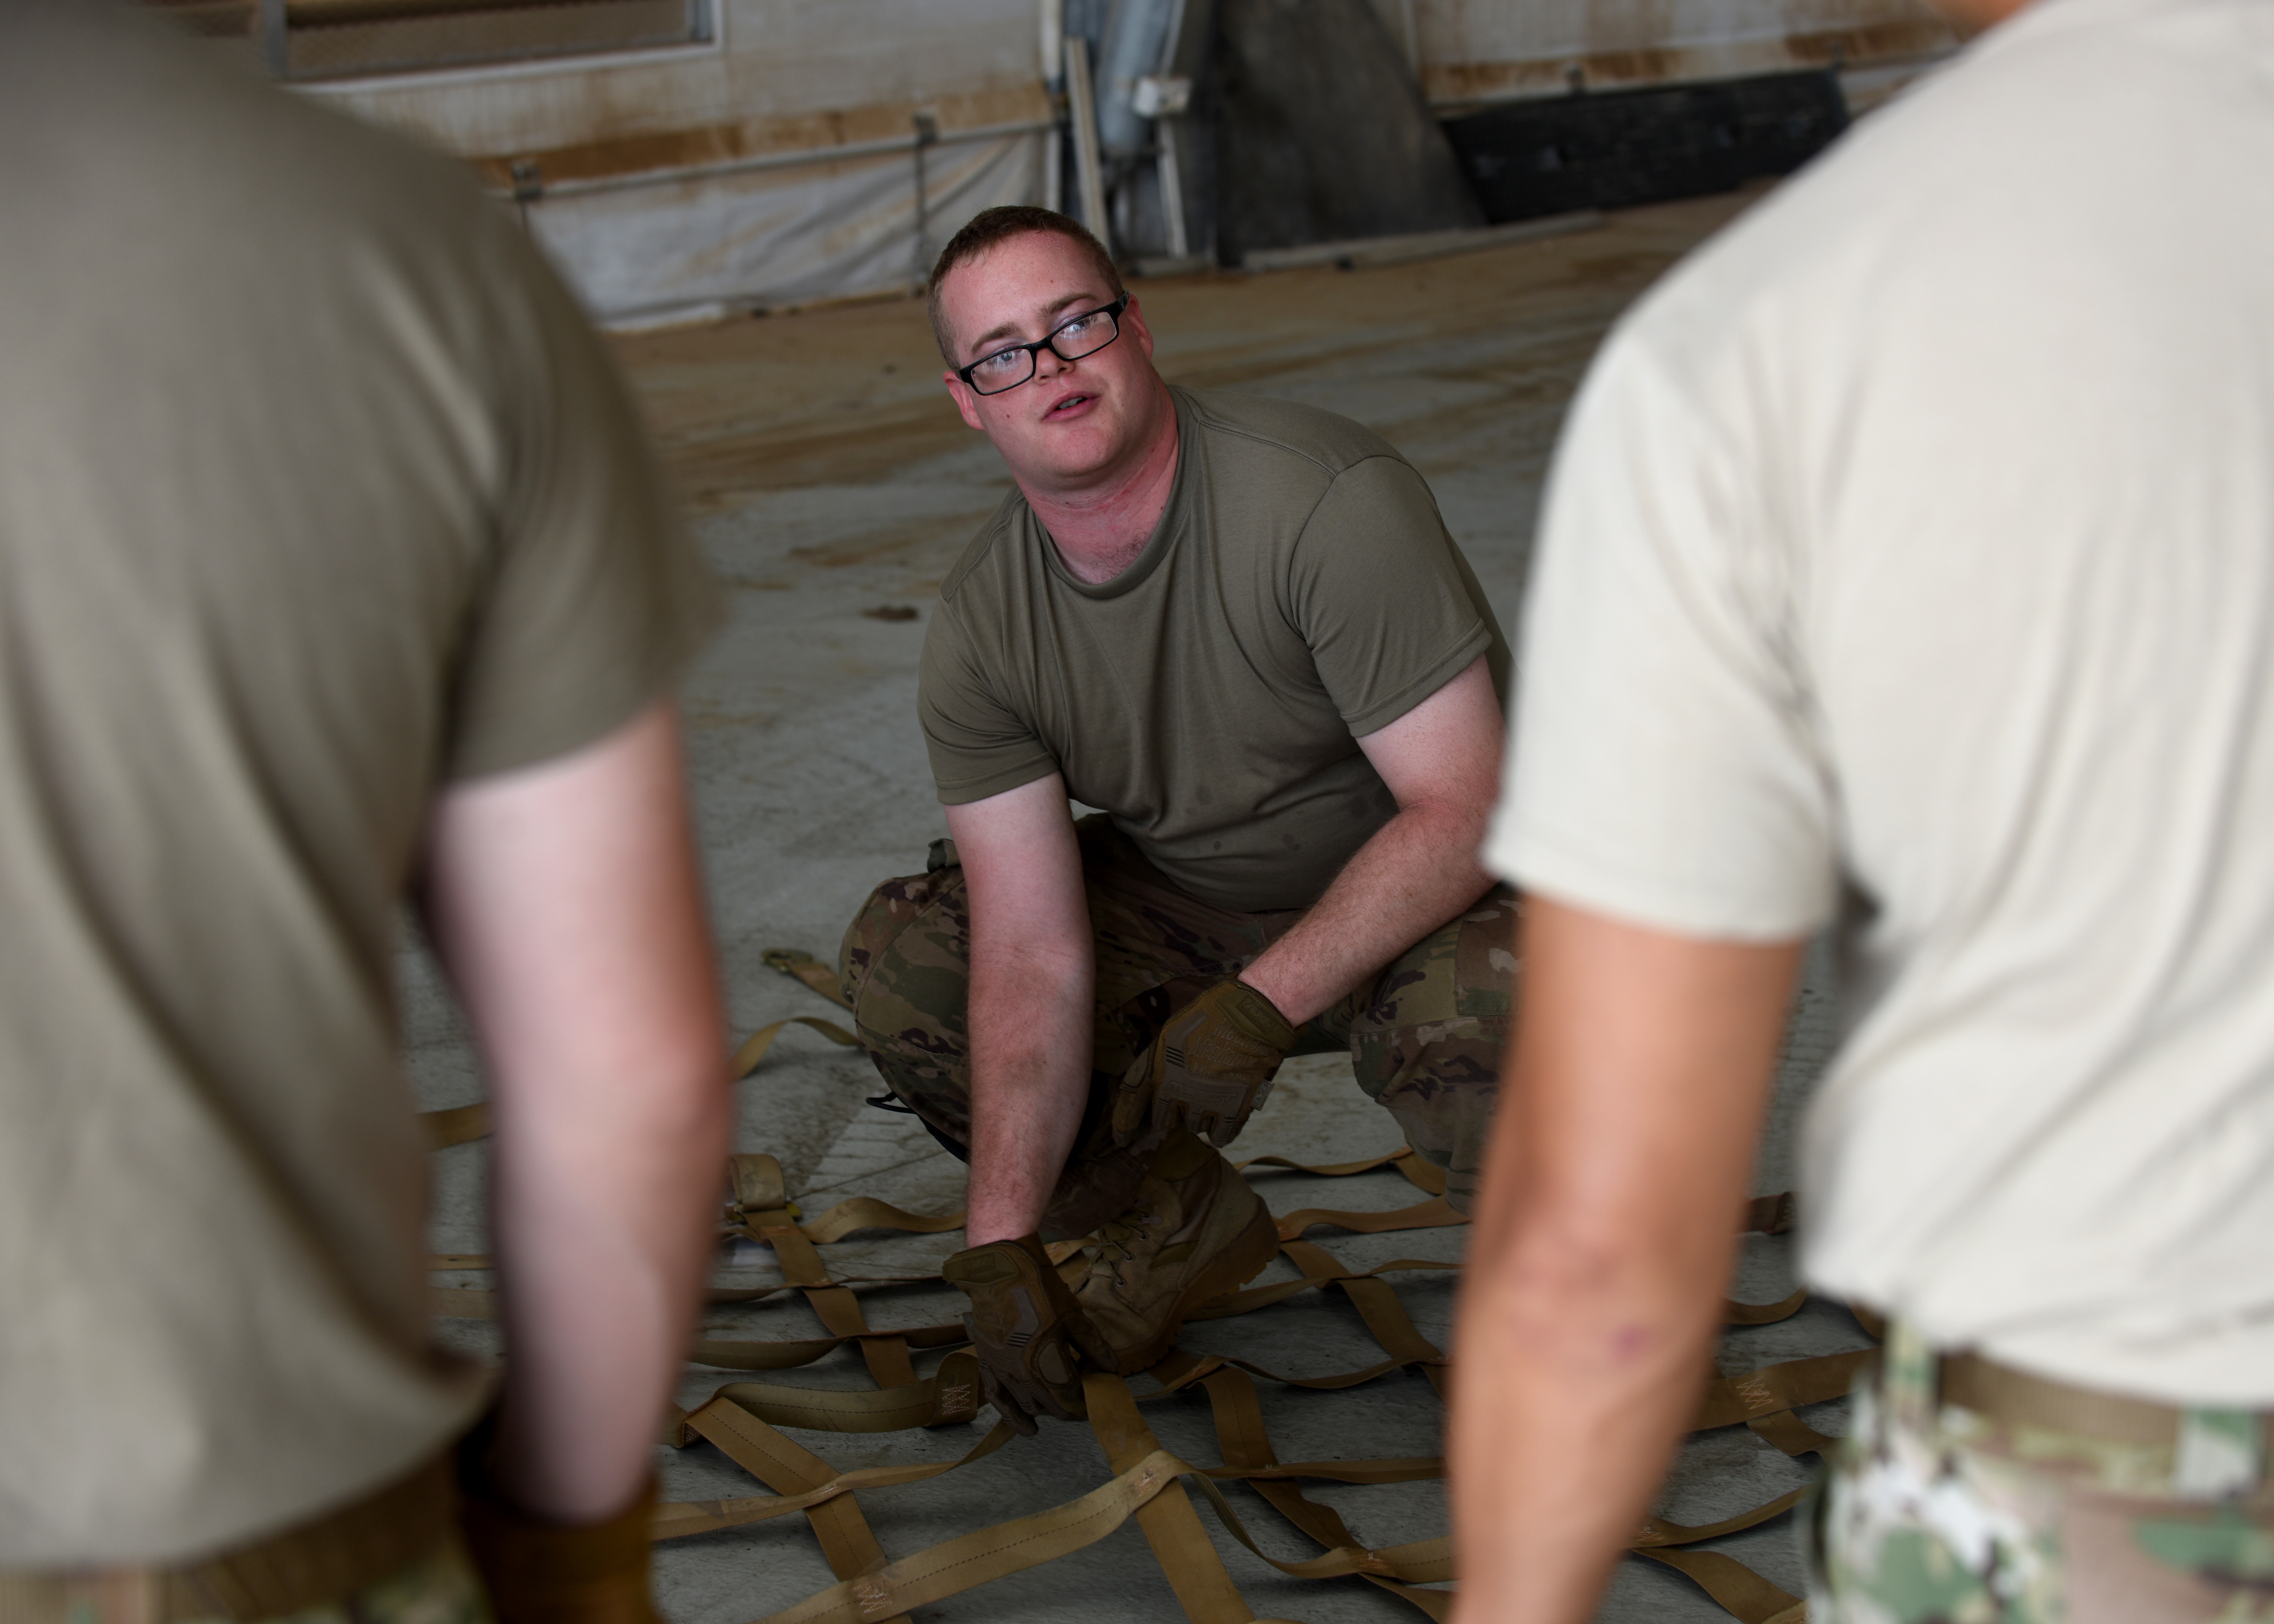 U.S. Air Force Senior Airman Cody Forth, mobile aerial porter for the 435th Contingency Response Group, Ramstein Air Base, Germany, supporting Combined Joint Task Force-Horn of Africa (CJTF-HOA), provides instructions for inspecting cargo nets used to transport U.S. Agency for International Development (USAID) supplies at Camp Lemonnier, Djibouti, April 1, 2019, for the U.S. Department of Defense's (DoD) relief effort in the Republic of Mozambique and surrounding areas following Cyclone Idai. Teams supporting CJTF-HOA, which is leading the DoD relief effort, prepared cargo for transport following a call for assistance from the USAID Disaster Assistance Response Team. (U.S. Air Force photo by Staff Sgt. Franklin R. Ramos)